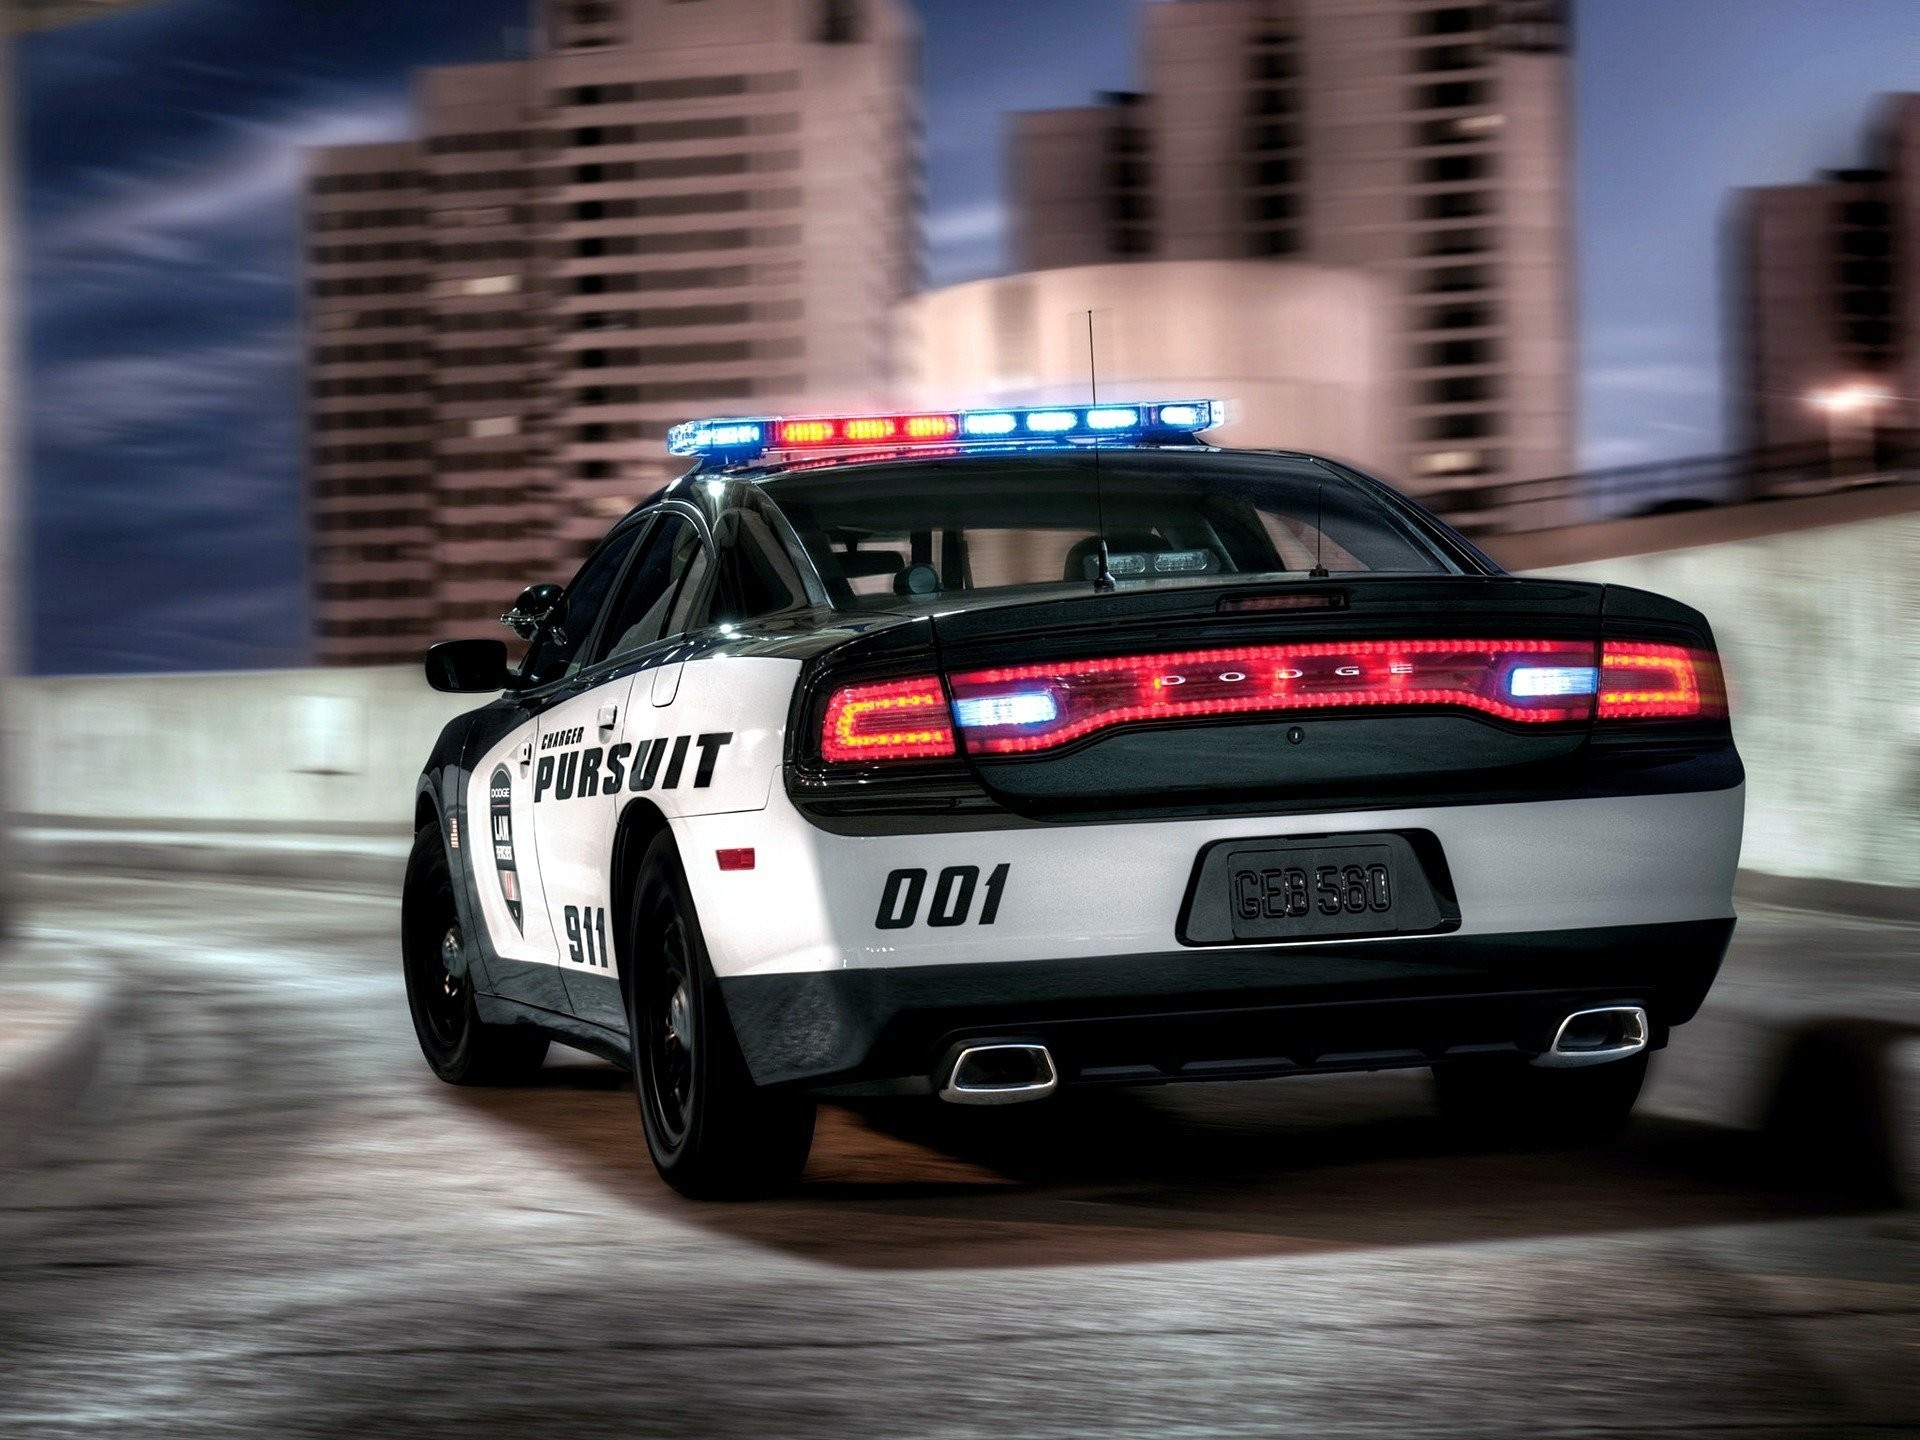 1920x1440 car wallpapers police dodge charger pursuit beautiful desktop vehicles  wallpapers dodge chardzher police machine